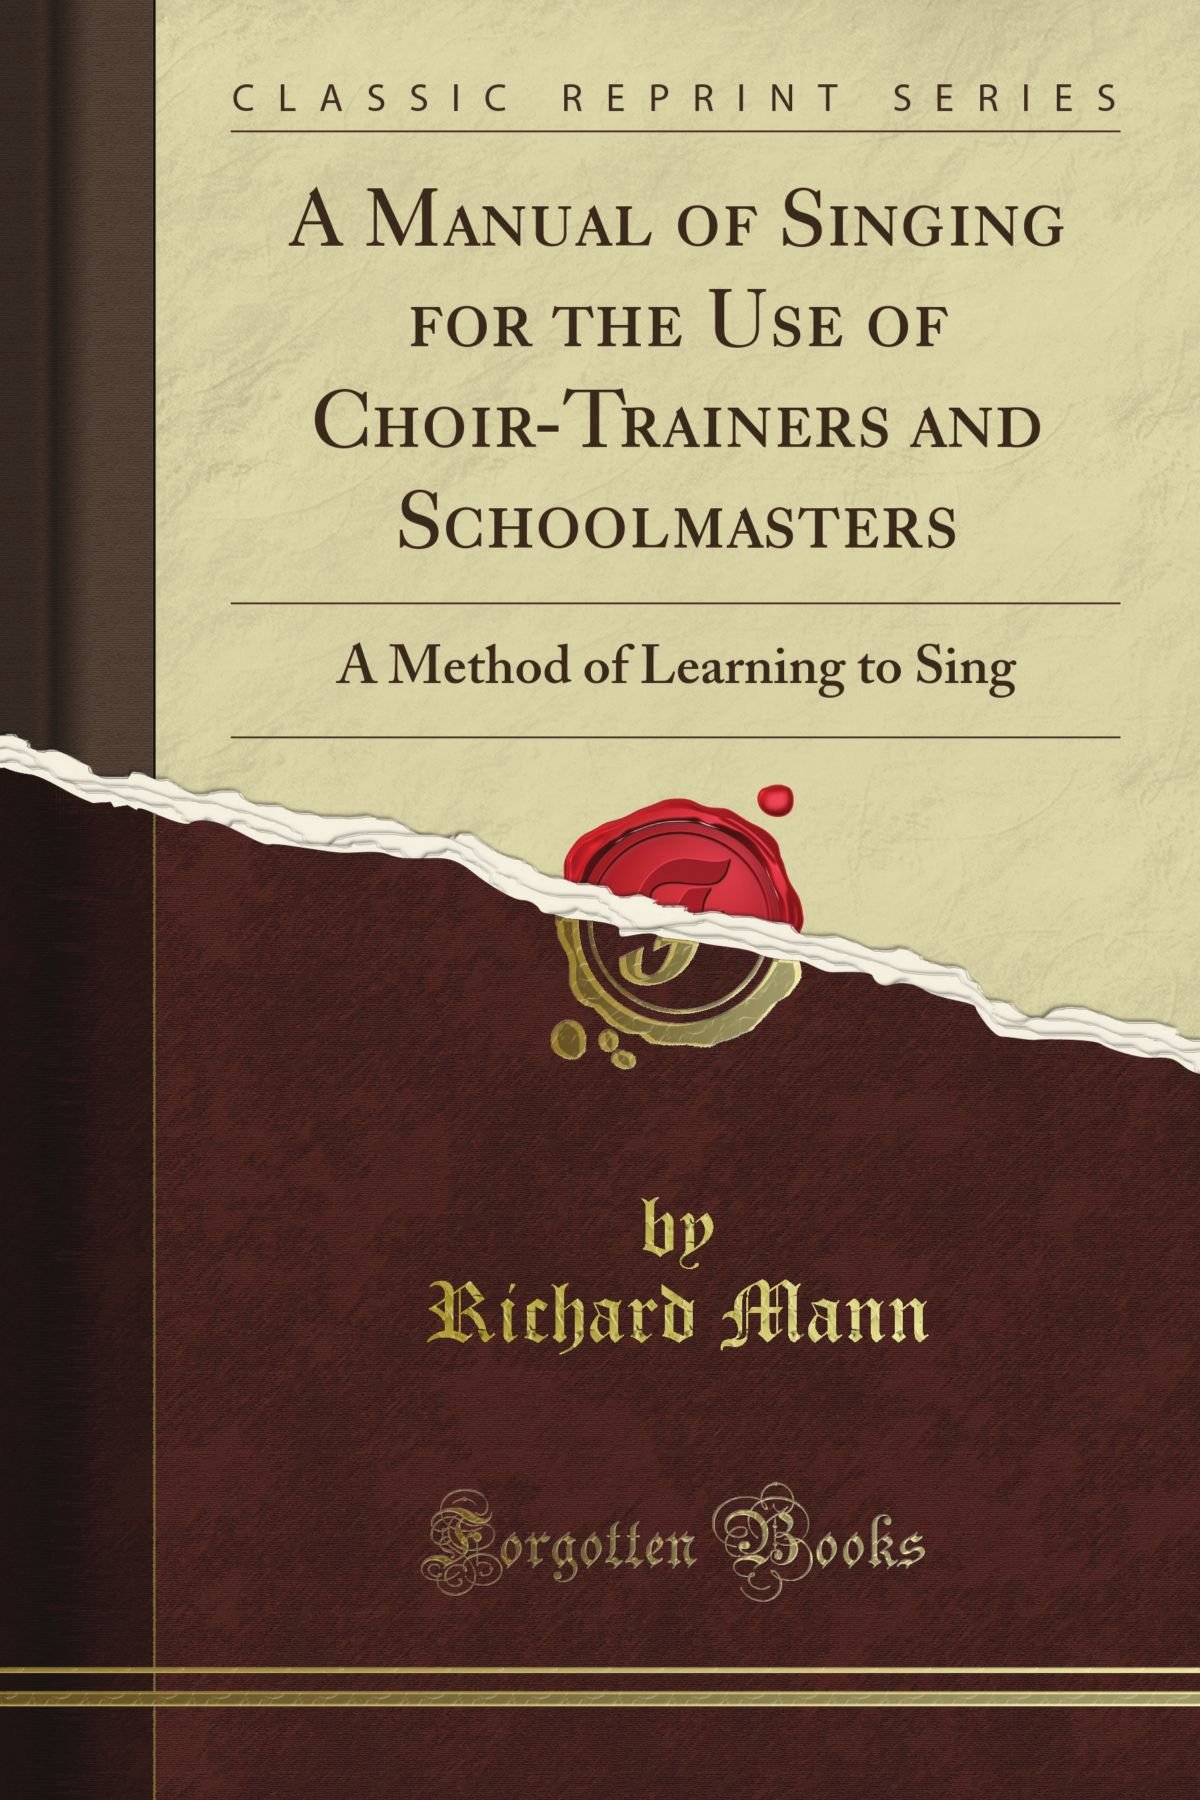 A Manual of Singing for the Use of Choir-Trainers and Schoolmasters: A Method of Learning to Sing (Classic Reprint)